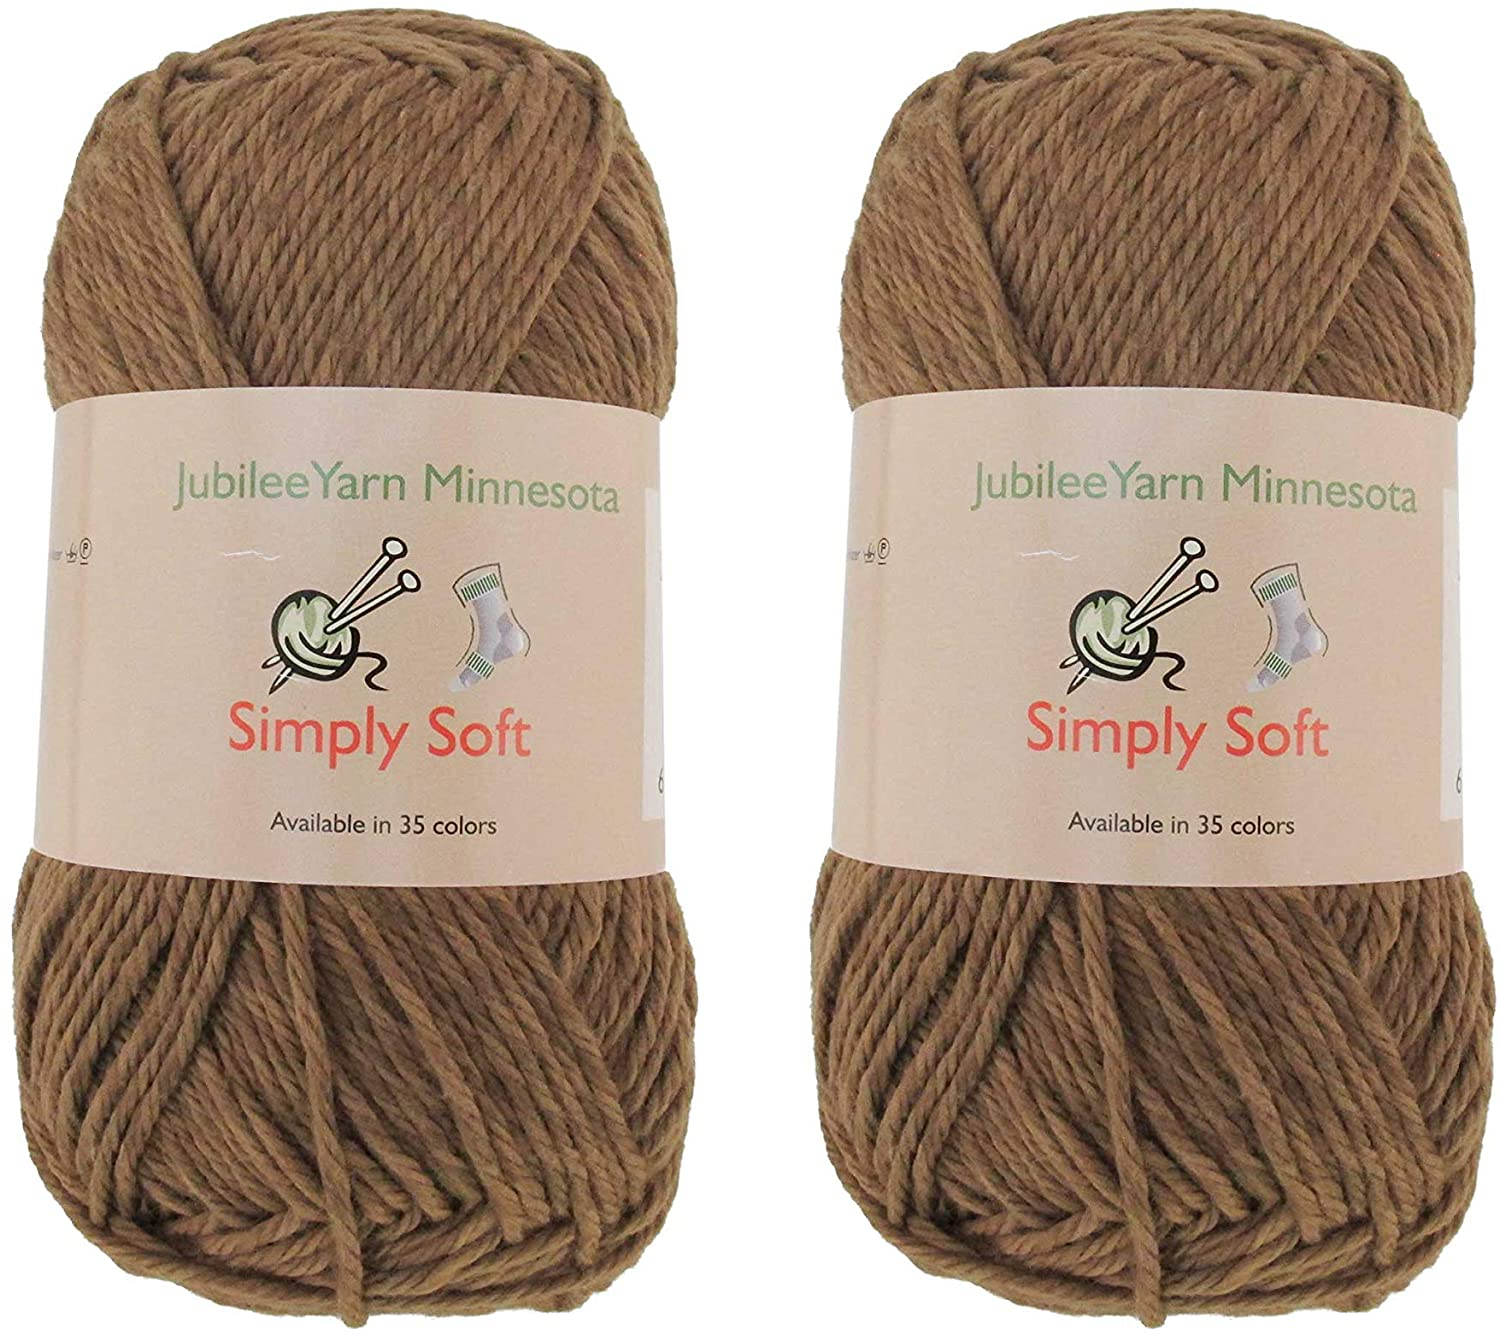 Light Weight Simply Soft Yarn 100g - 2 Skeins - 50% Cotton 50% Polyester - Chestnut Brown - Color 210